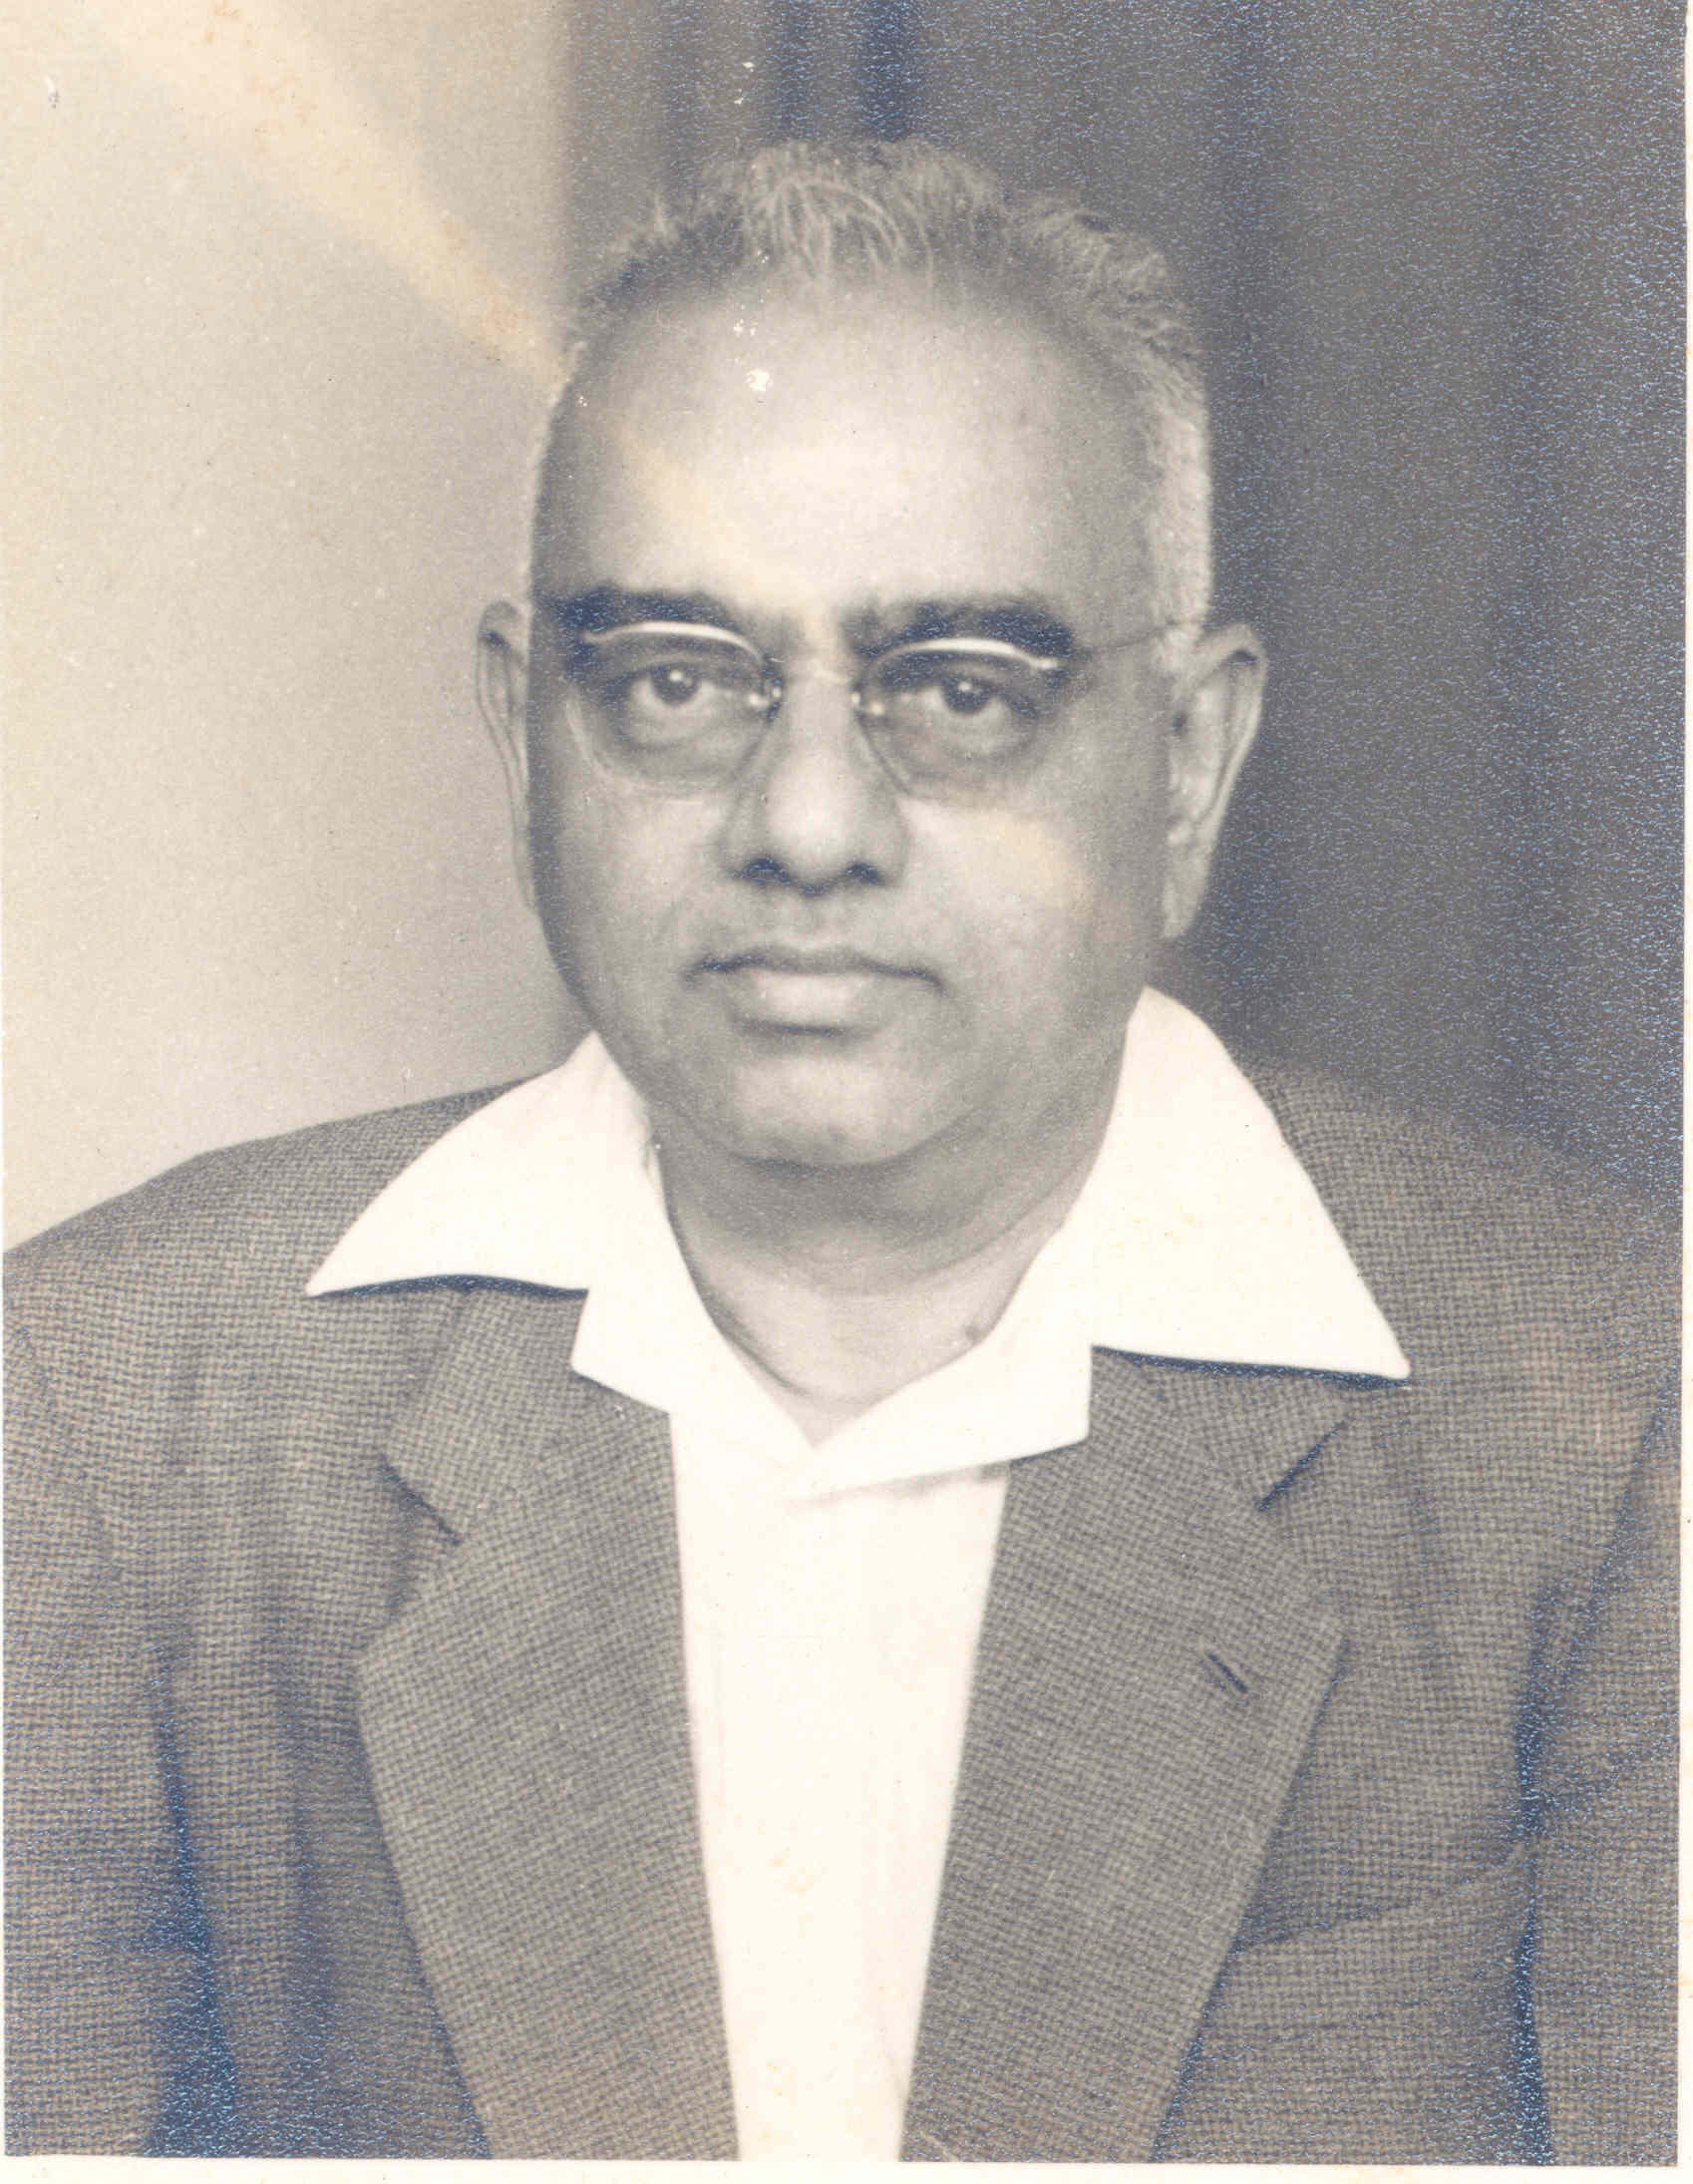 Profile image of Govindaswamy, M V